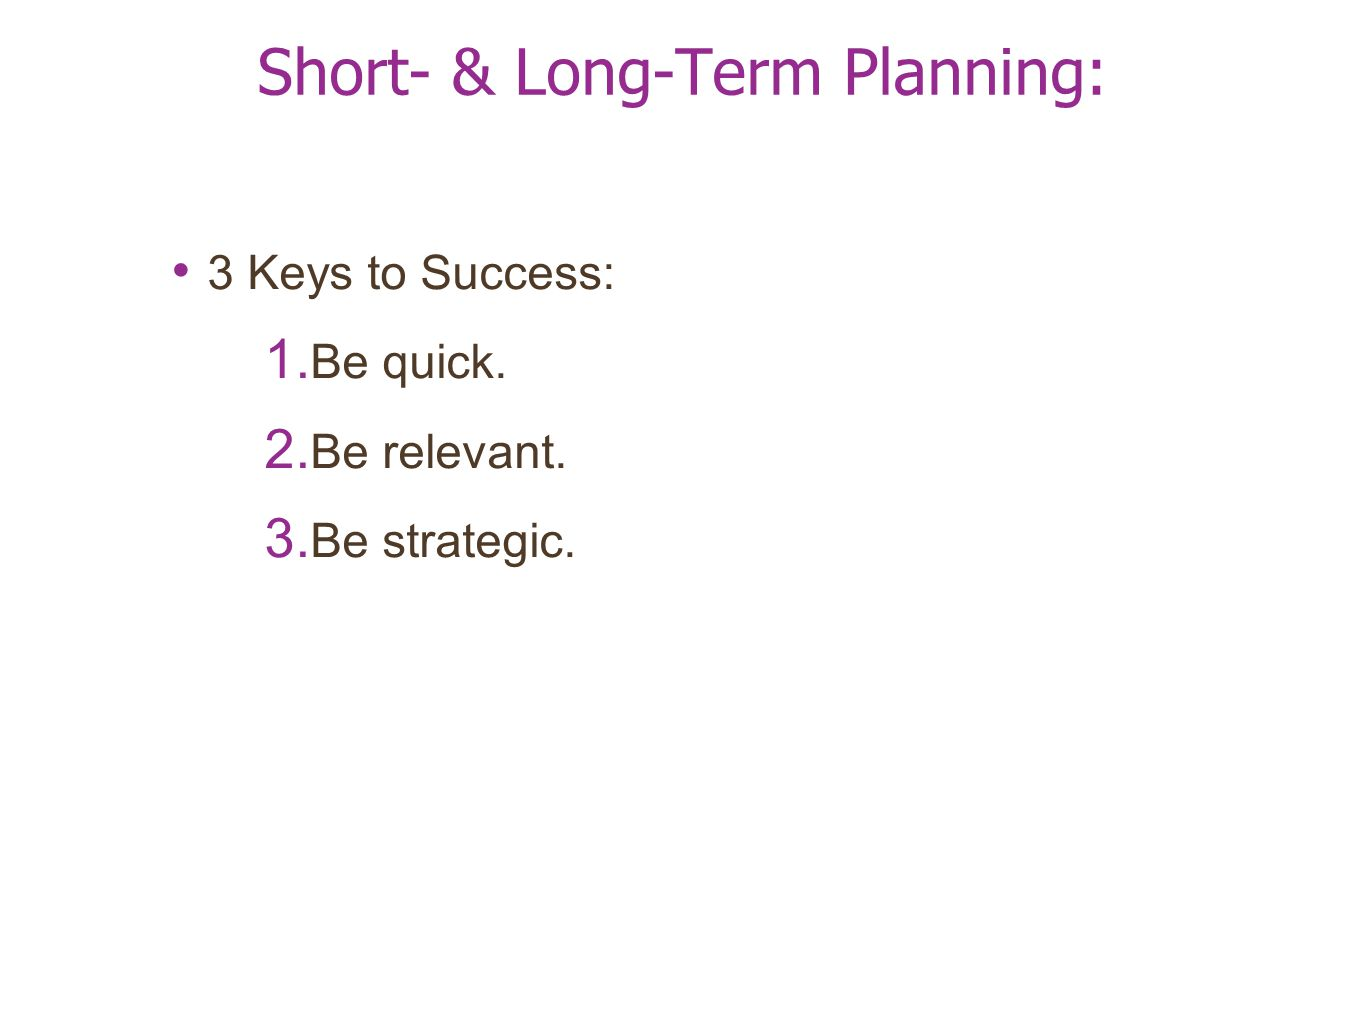 Short- & Long-Term Planning: 3 Keys to Success: 1. Be quick. 2. Be relevant. 3. Be strategic.